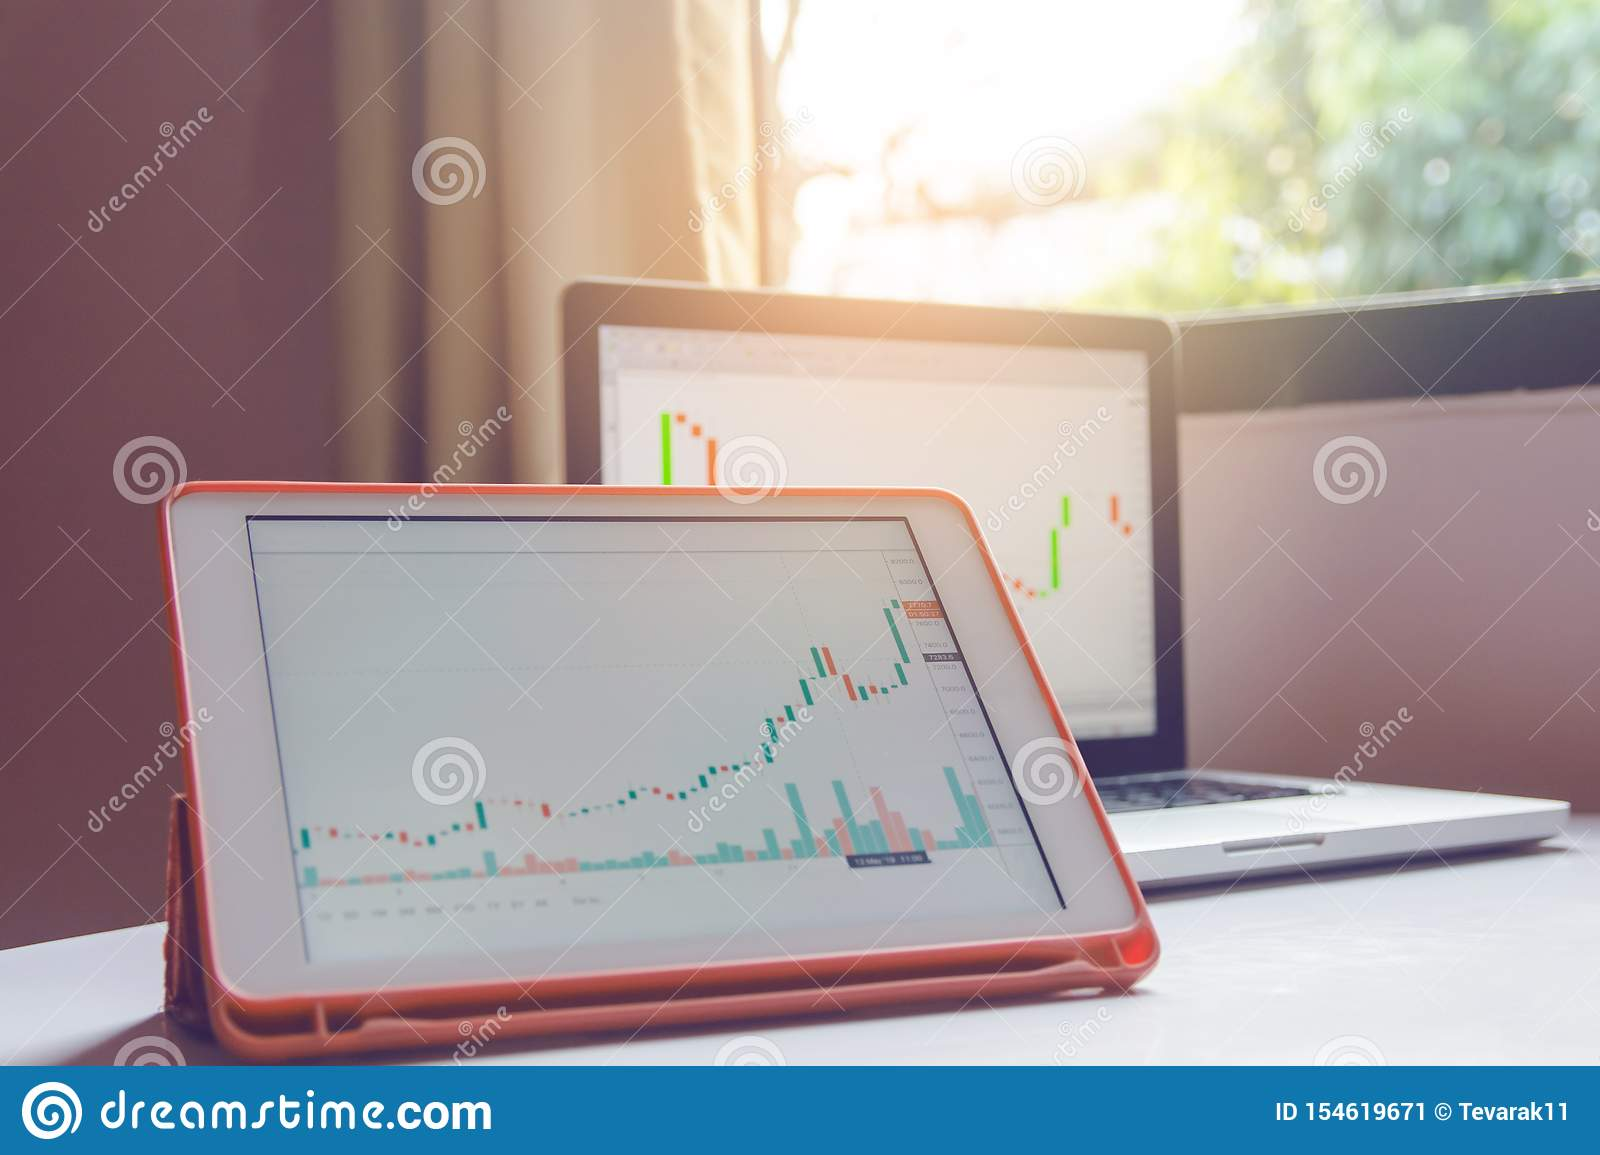 Trading forex tablet mbuna investments in the philippines